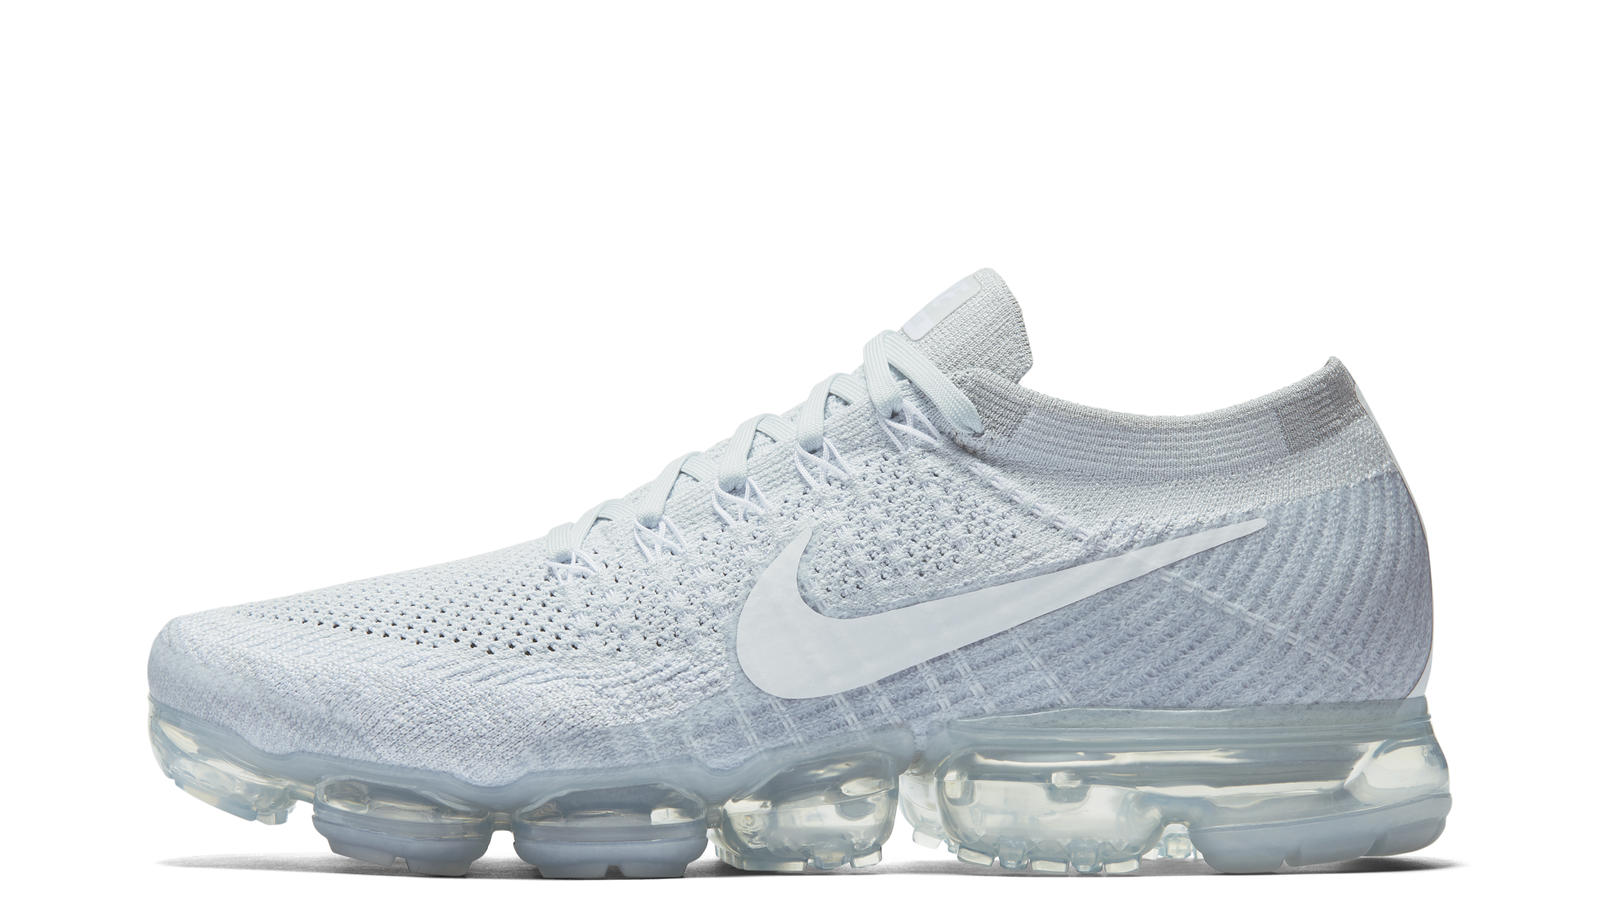 095366420e6b7 Shades of VaporMax 8. Nike Air VaporMax Flyknit ...